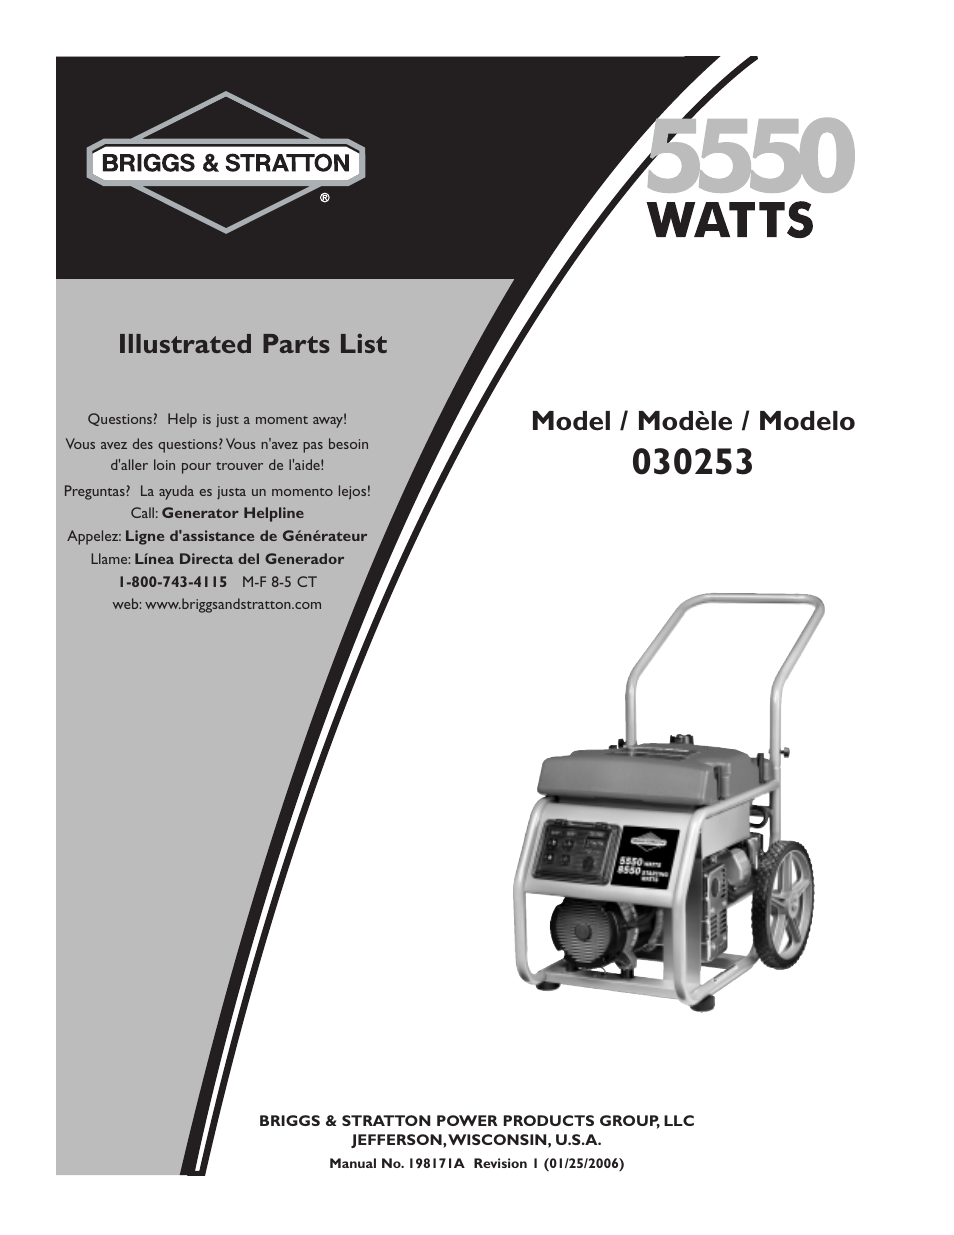 Briggs Stratton 30253 User Manual 5 Pages And Engine Diagram Parts List For